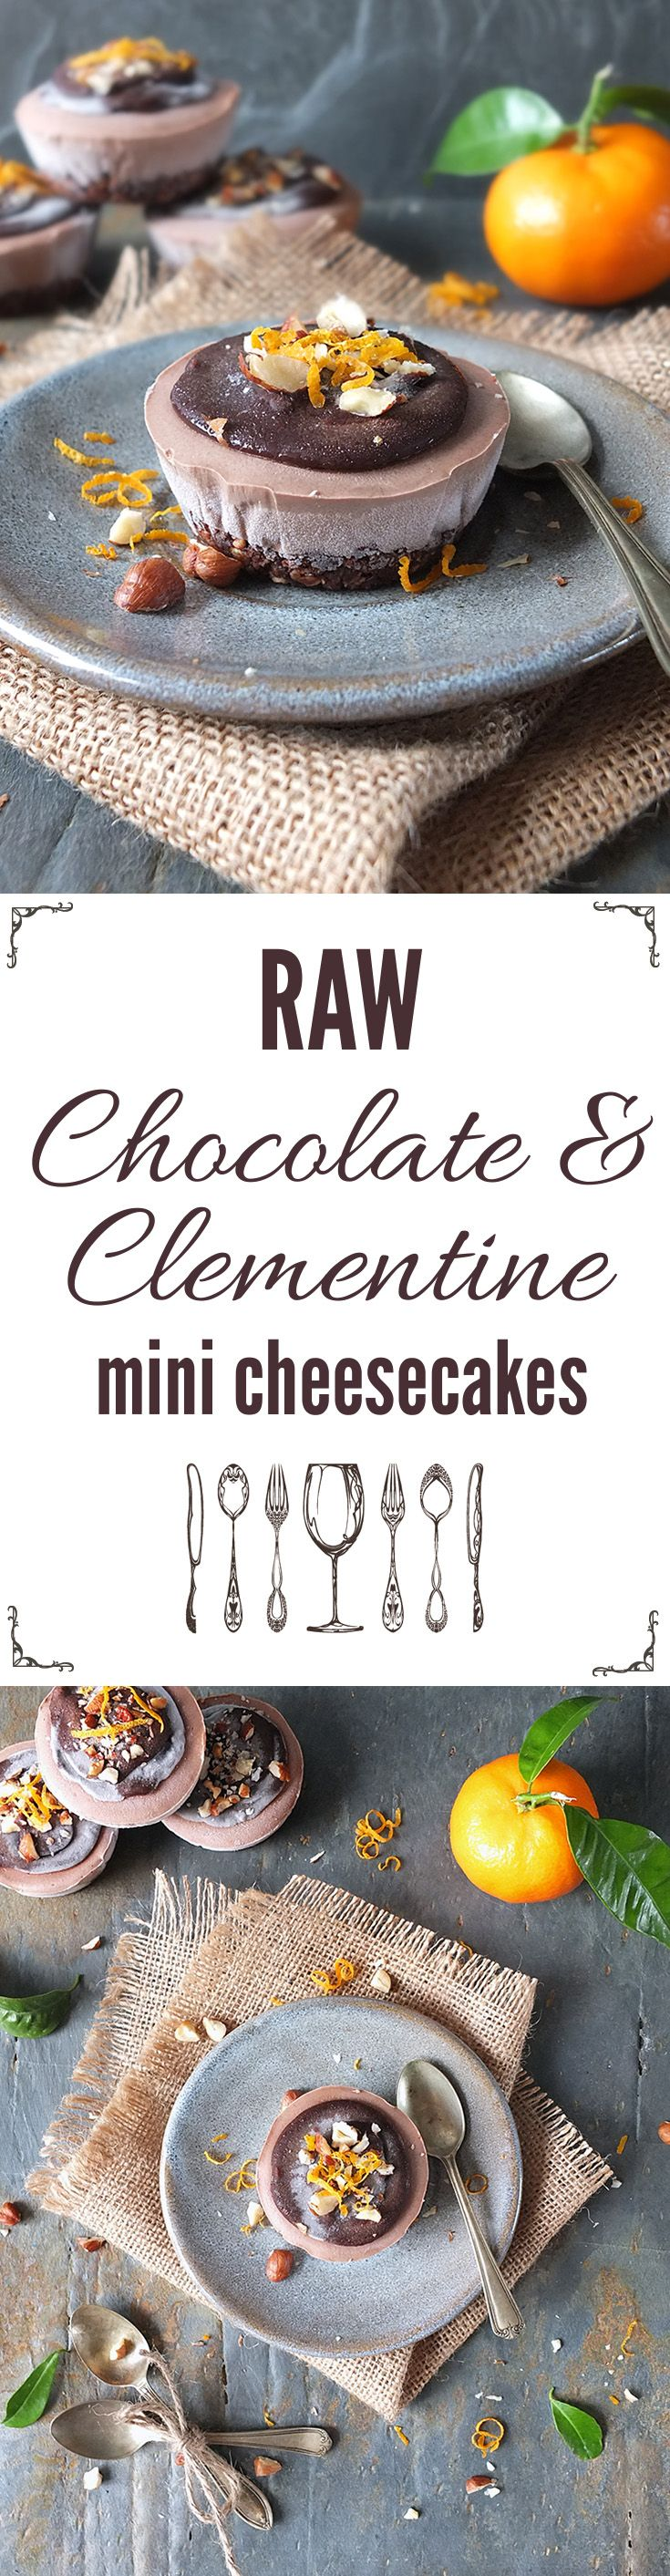 This raw, vegan chocolate and clementine mini cheesecakes have a chocolate hazelnut crust and they're remarkably simple to make!